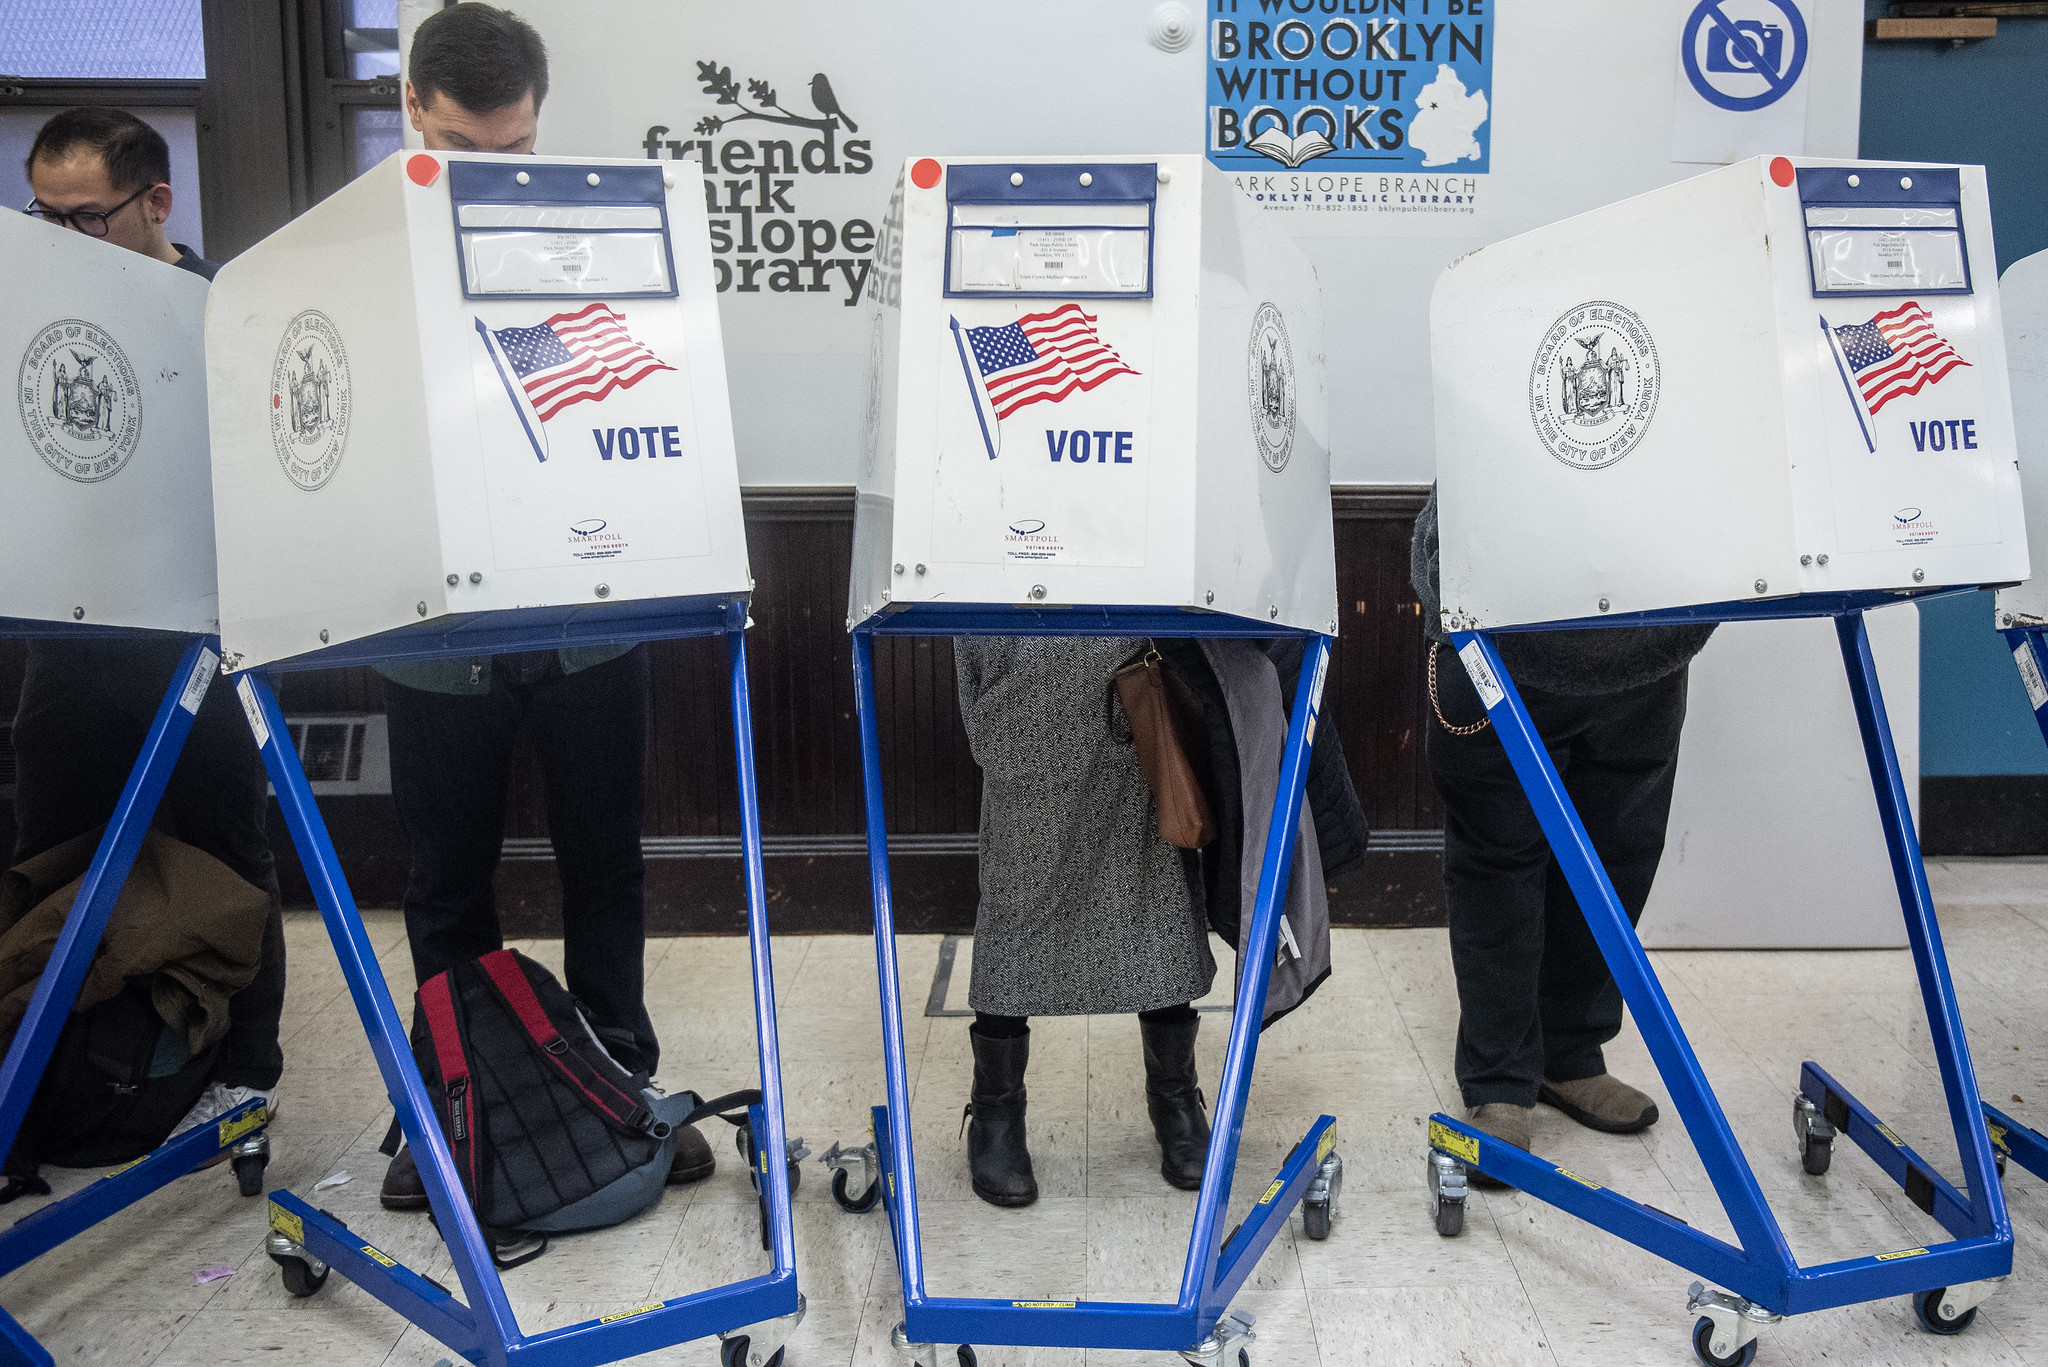 Three voters stand at the polls casting their votes in 2018's general election.